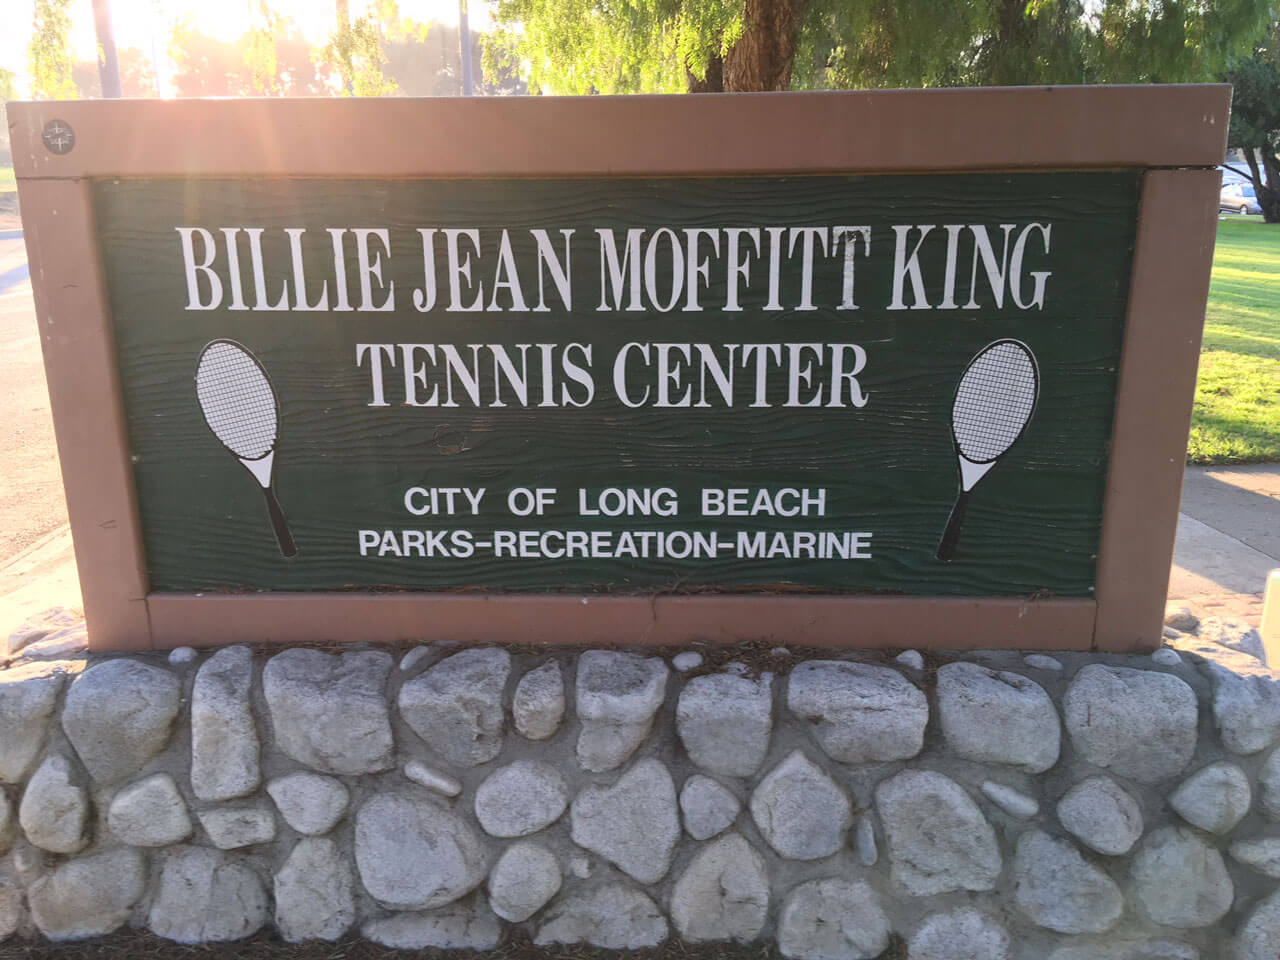 Billie Jean Moffitt King Tennis Center